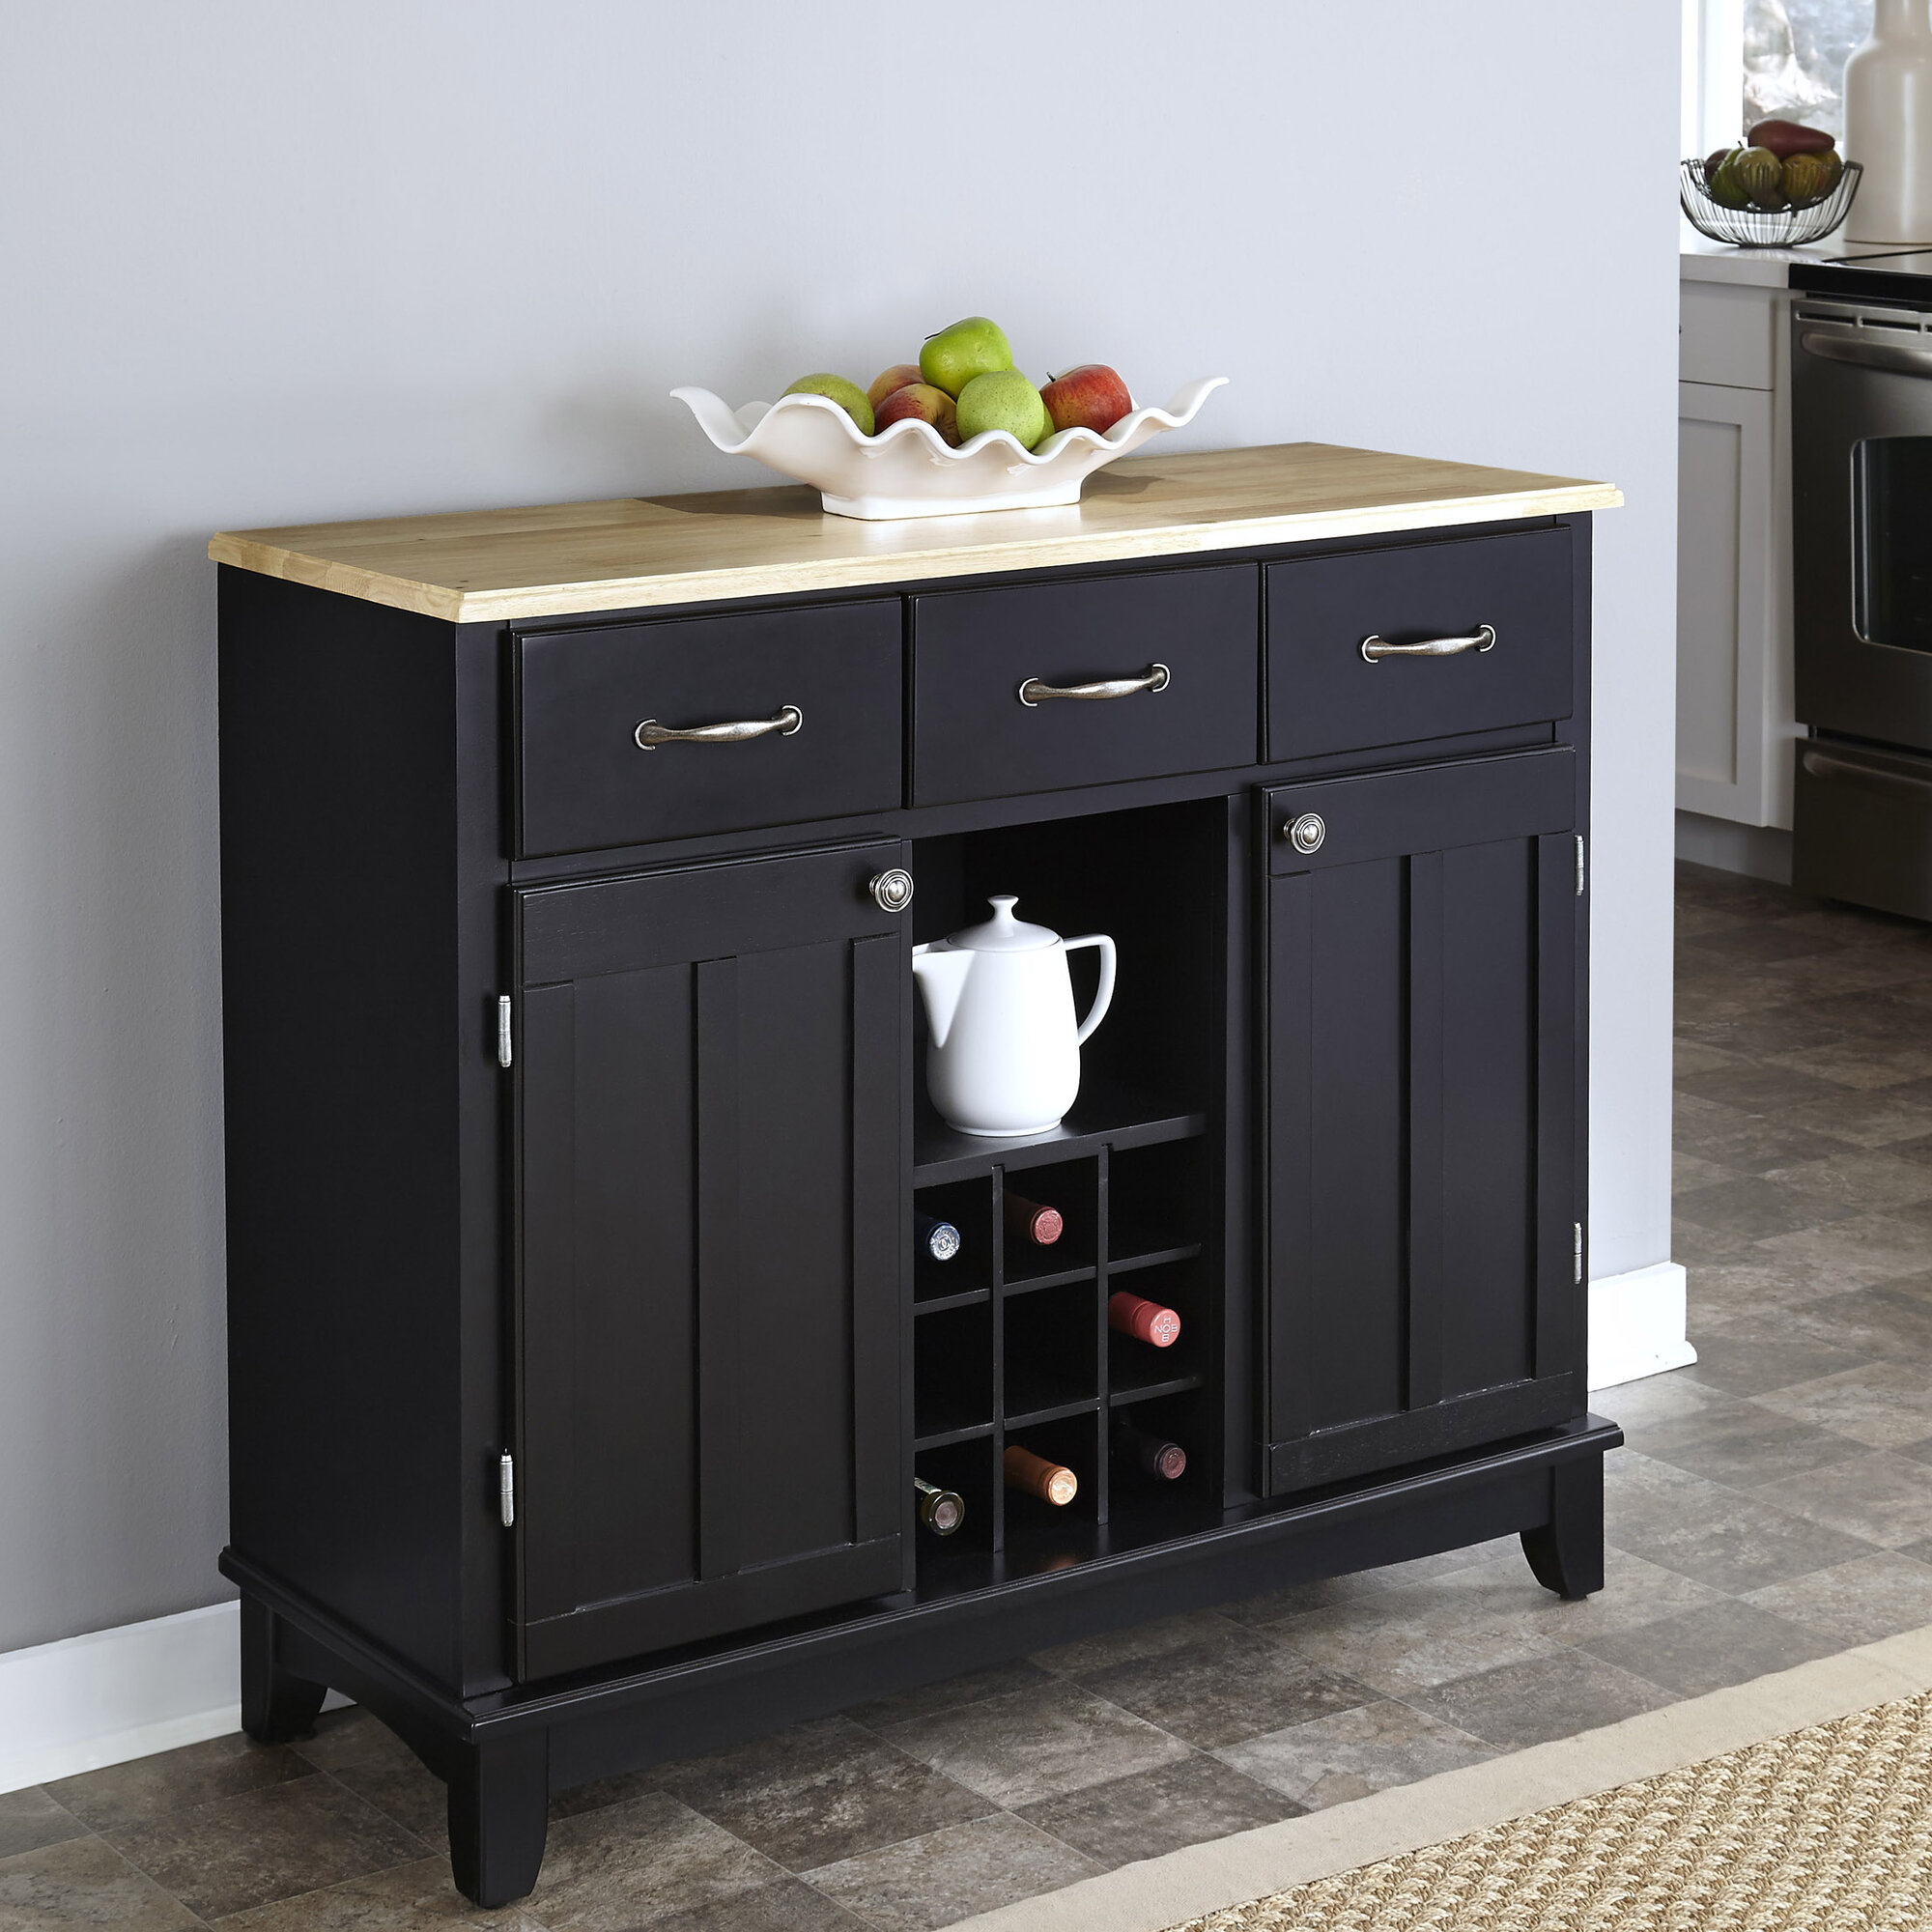 Sideboard buffet server dining room cabinet wine rack storage furniture black ebay - Dining room server furniture ...